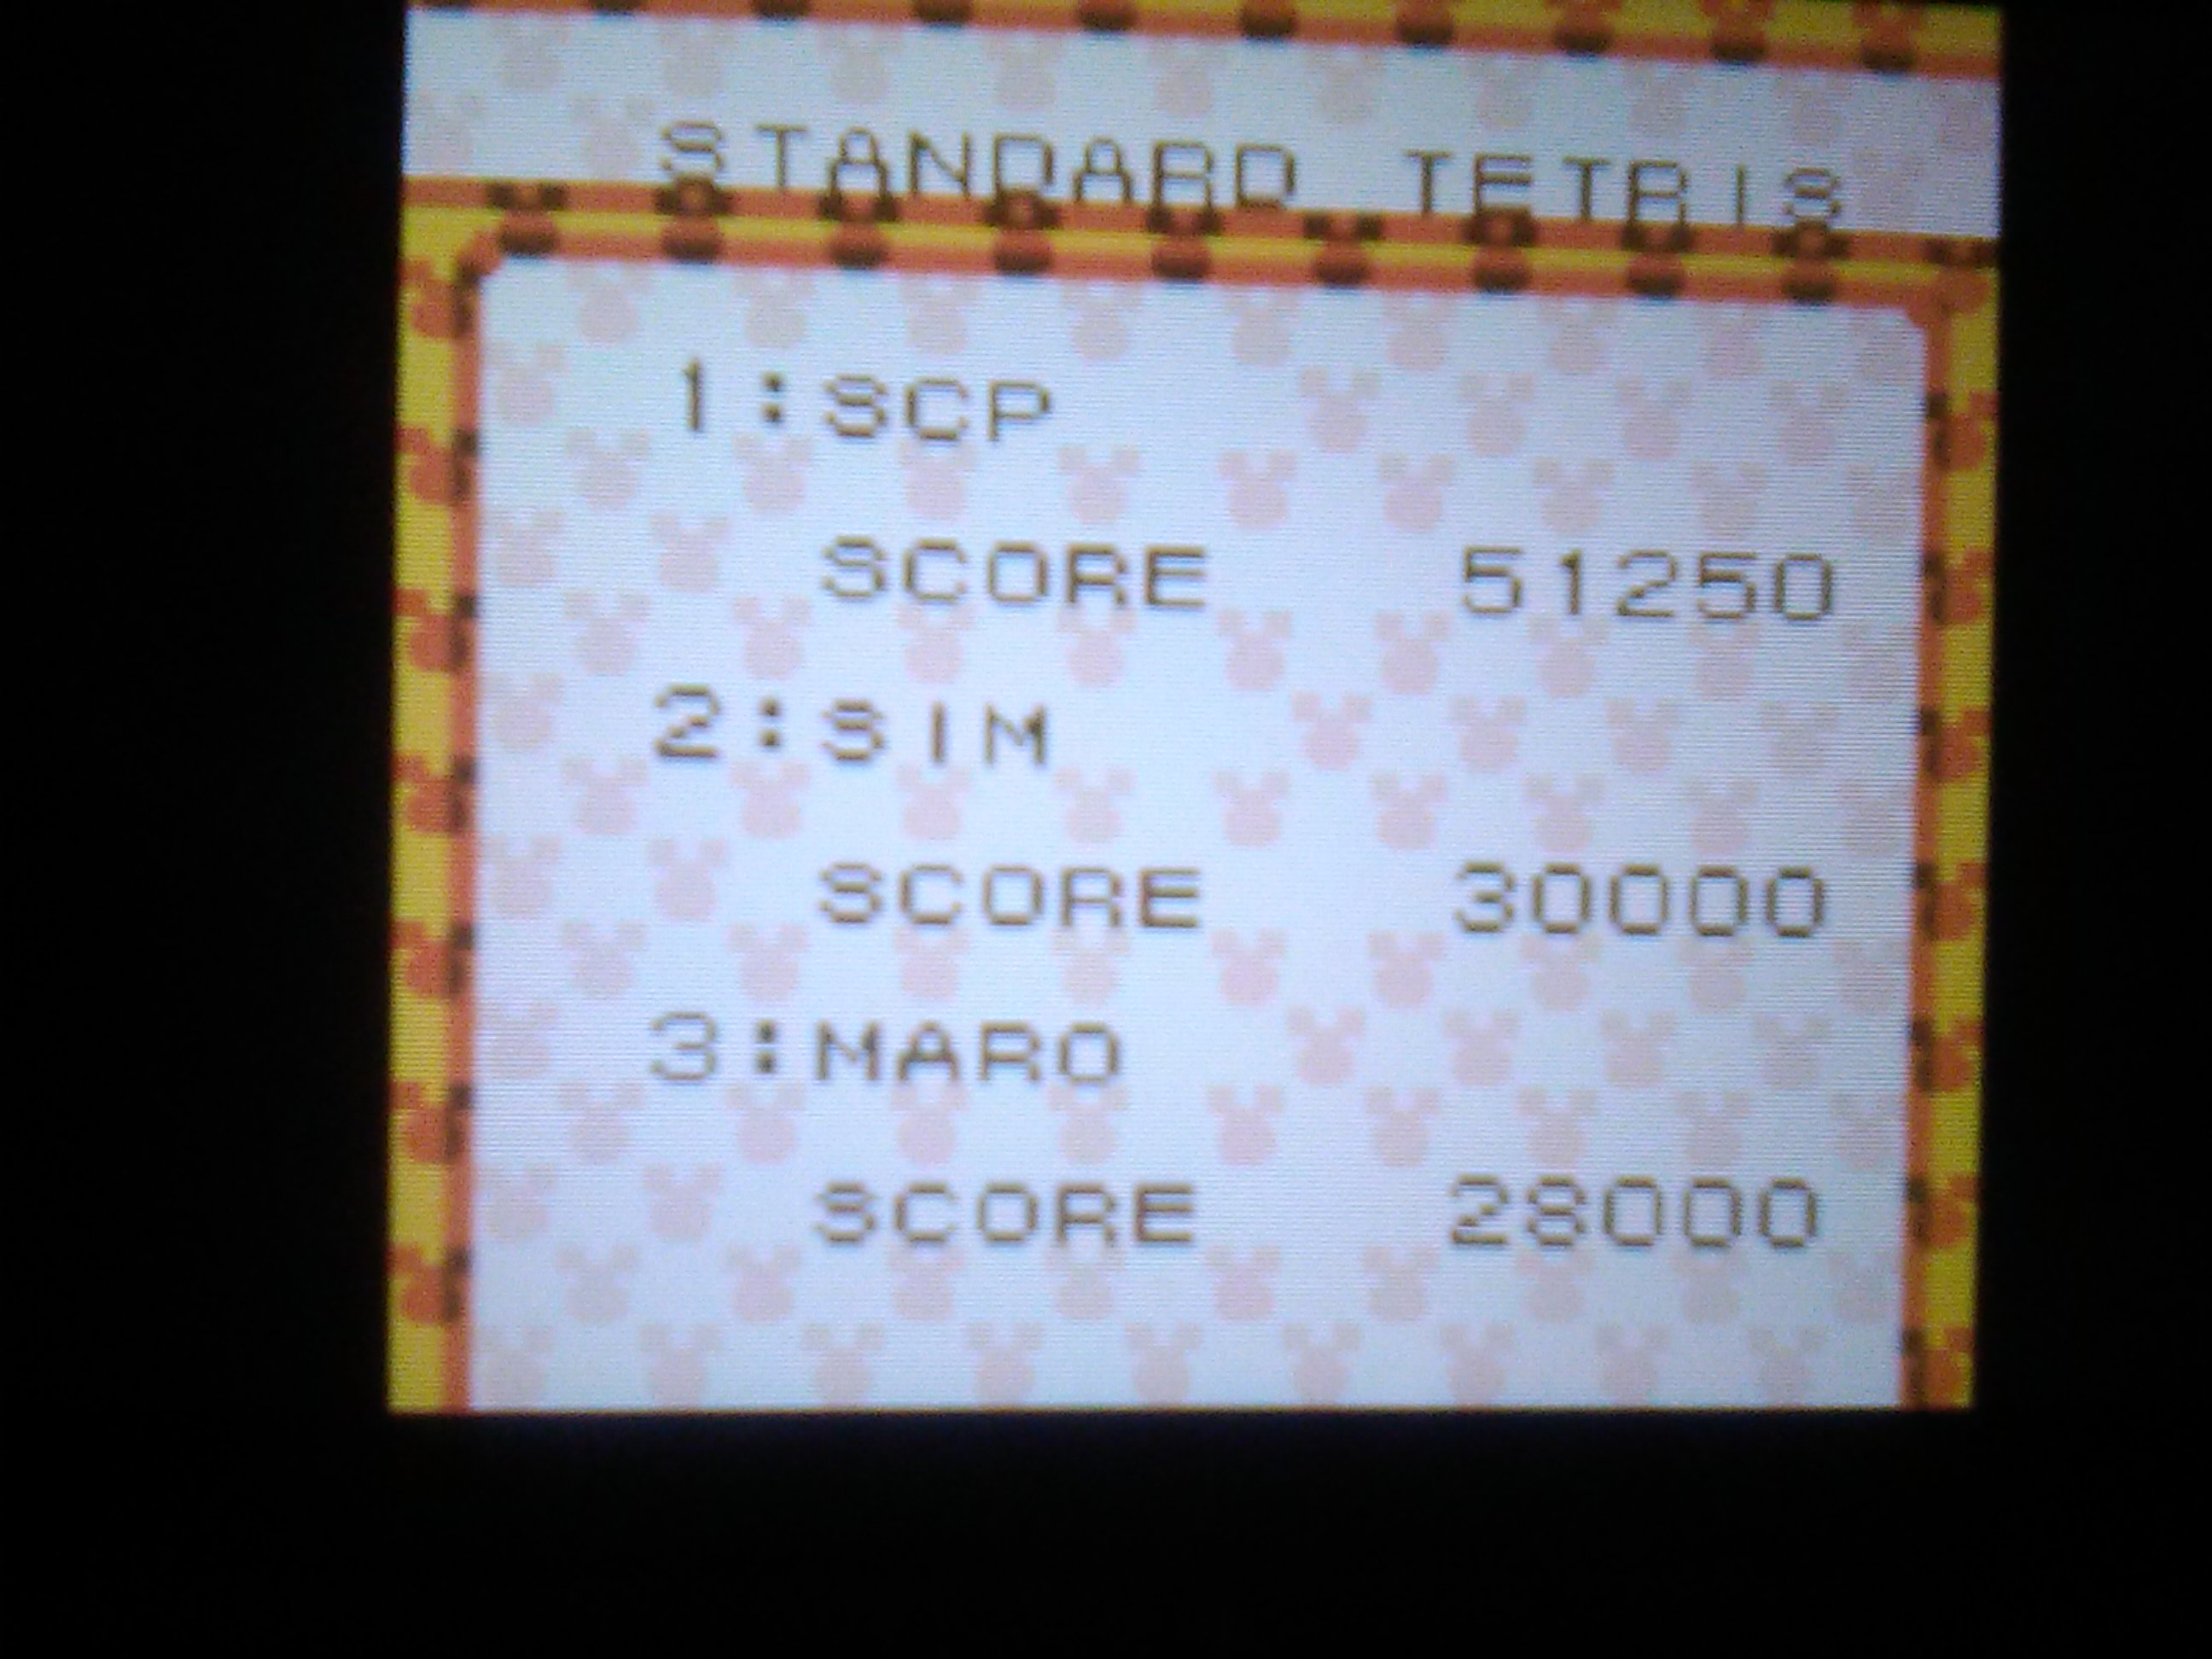 Magical Tetris Challenge: Standard Tetris [Normal Difficulty] 51,250 points